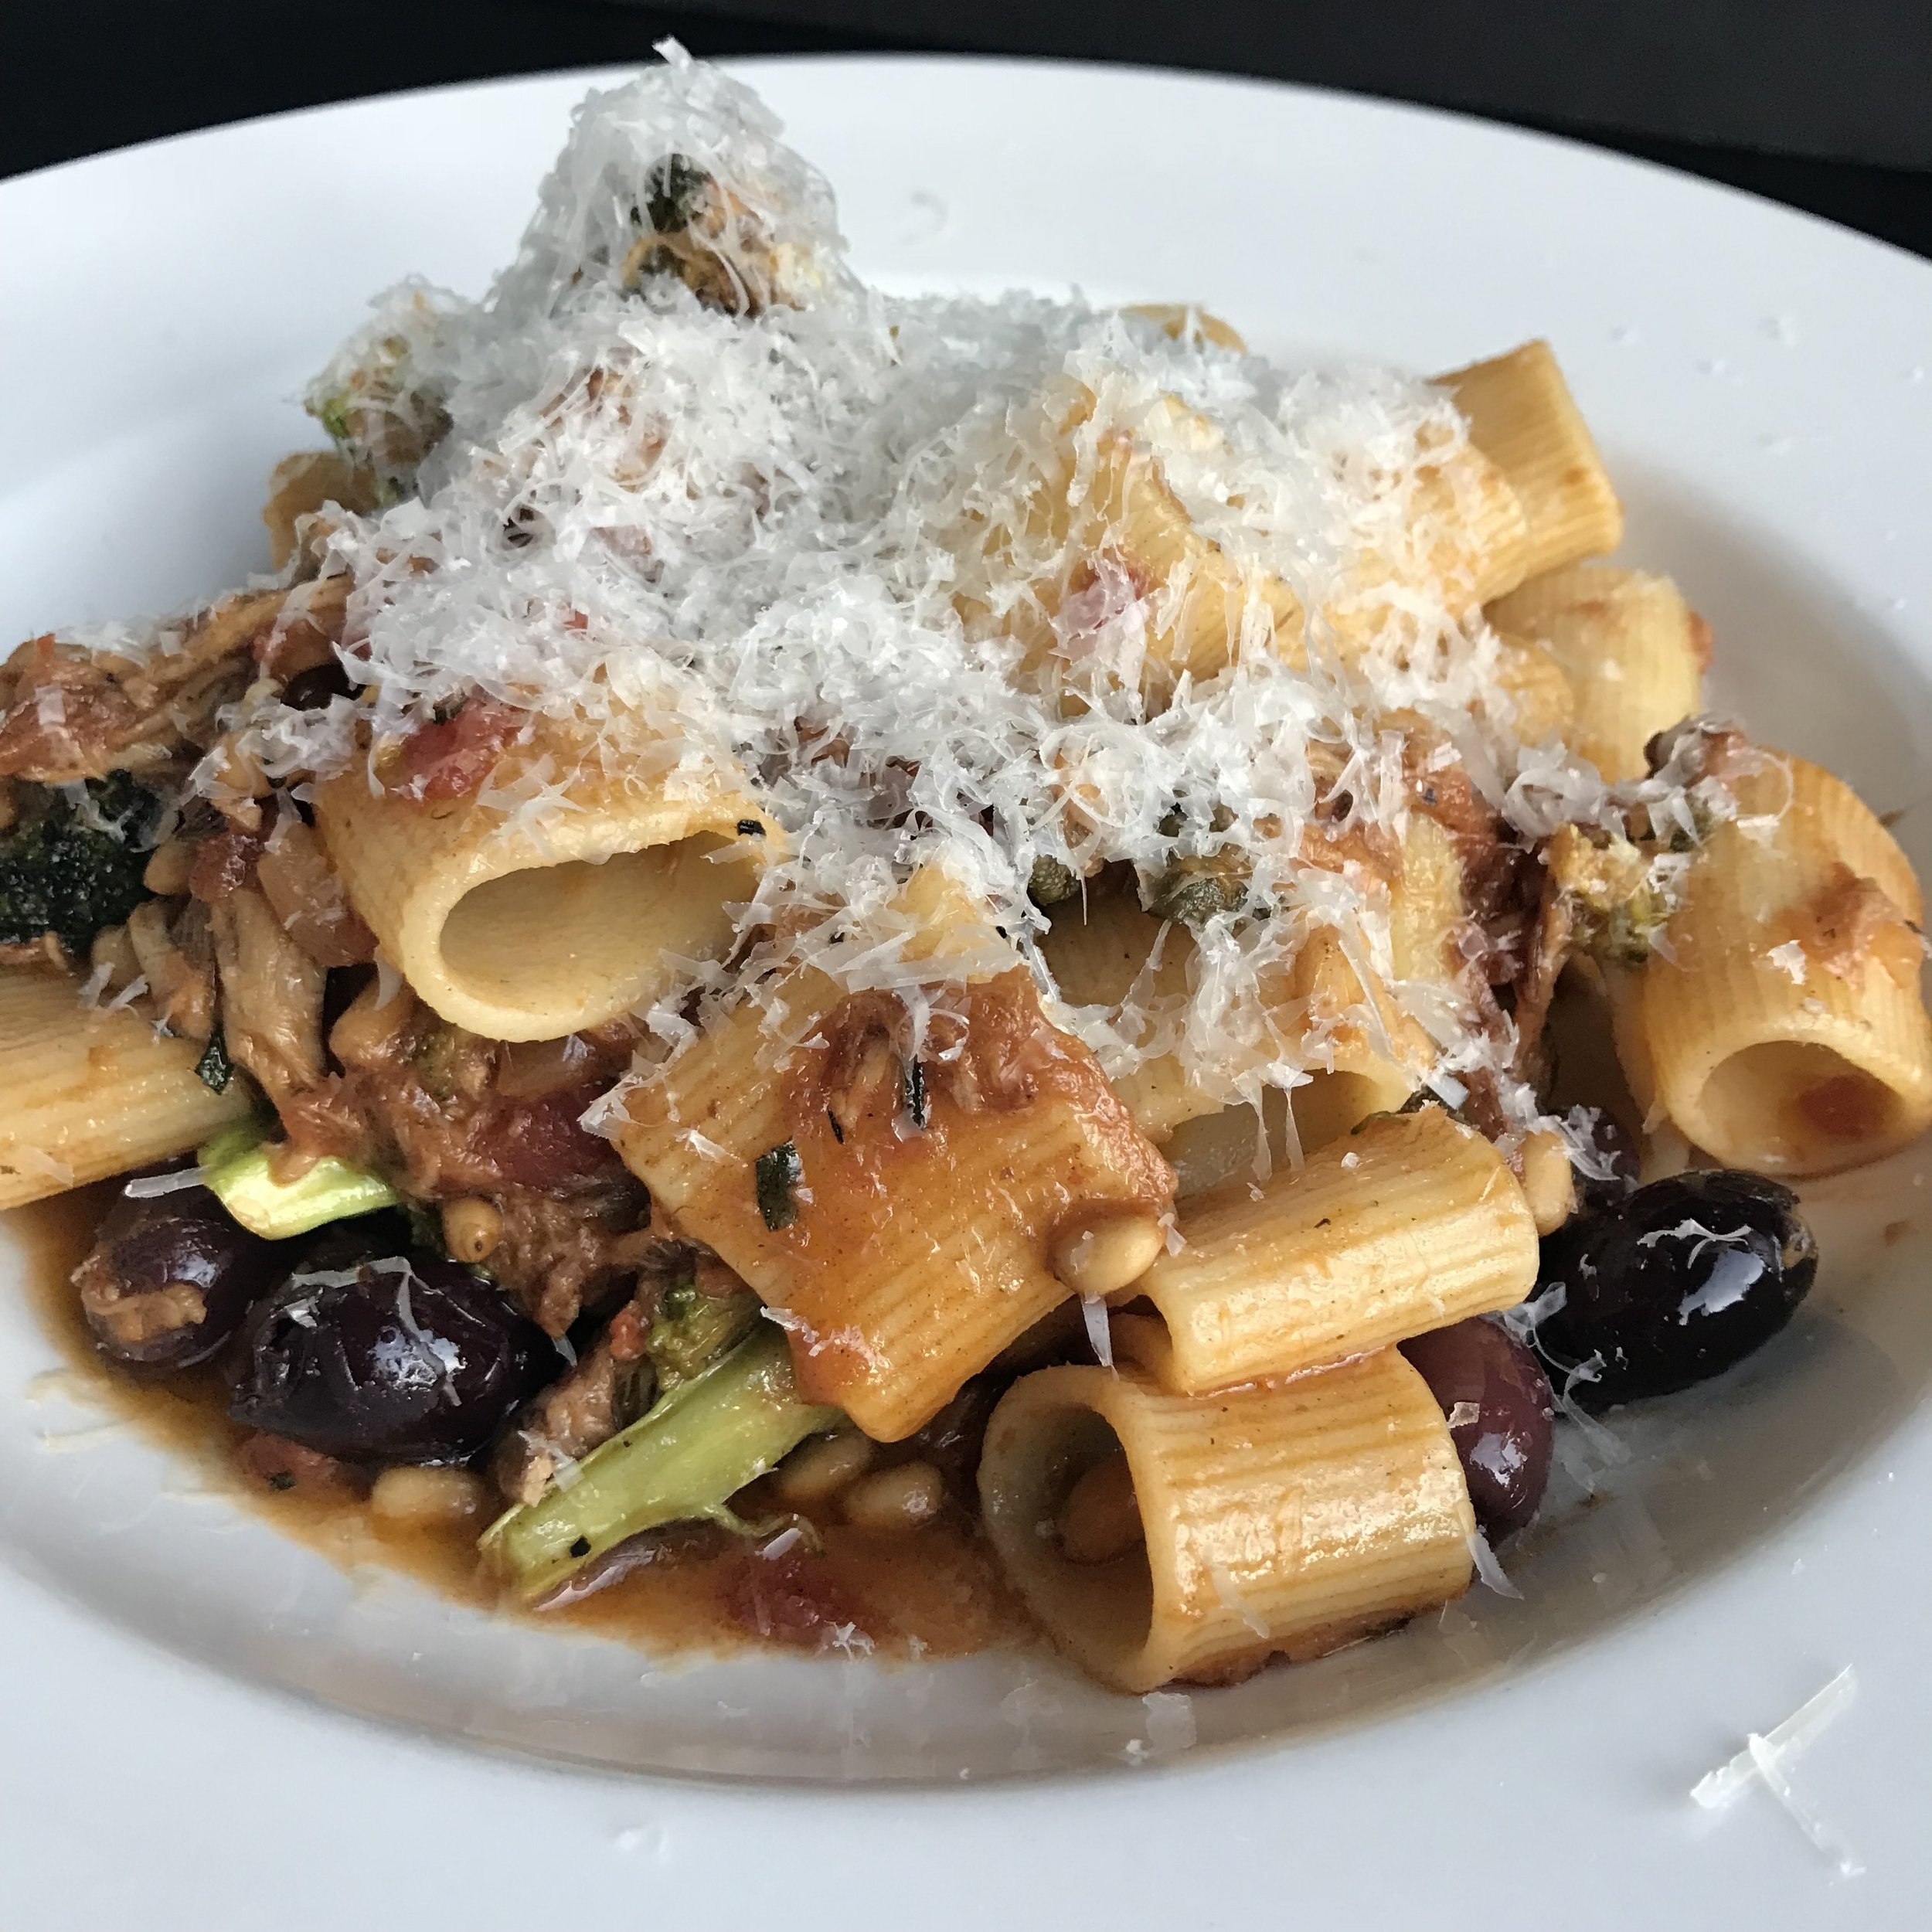 rigatoni, broccoli, olives, capers, pine nuts, and slow roasted pork ragu with parmesan